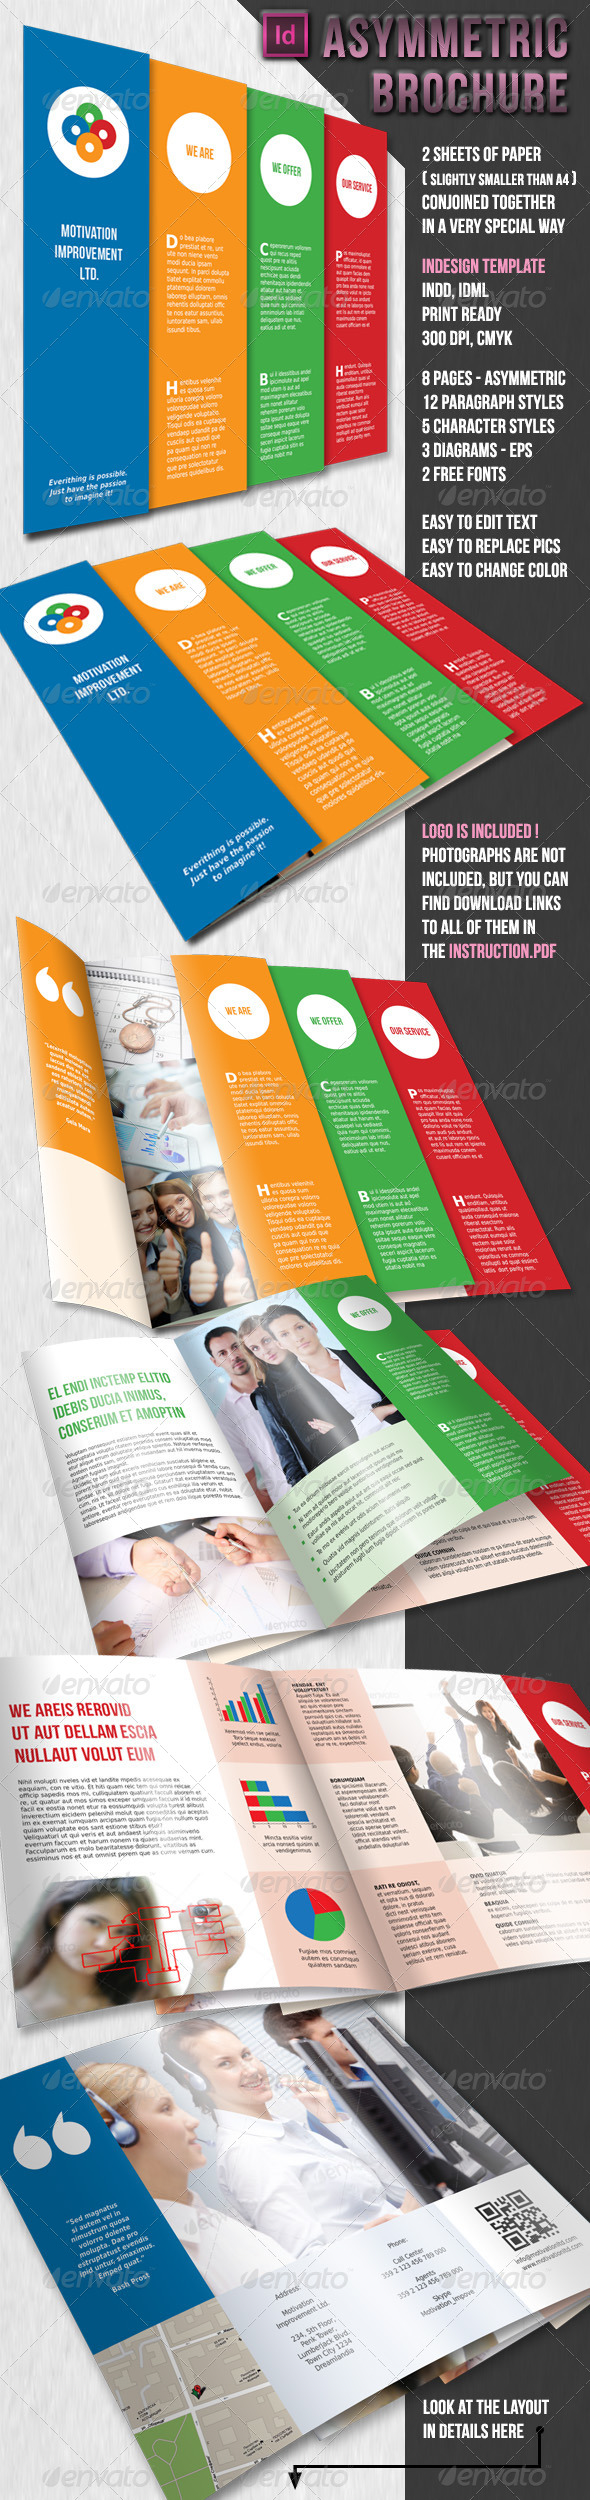 GraphicRiver Asymmetric Brochure 2 x A4 8 pages 4158402